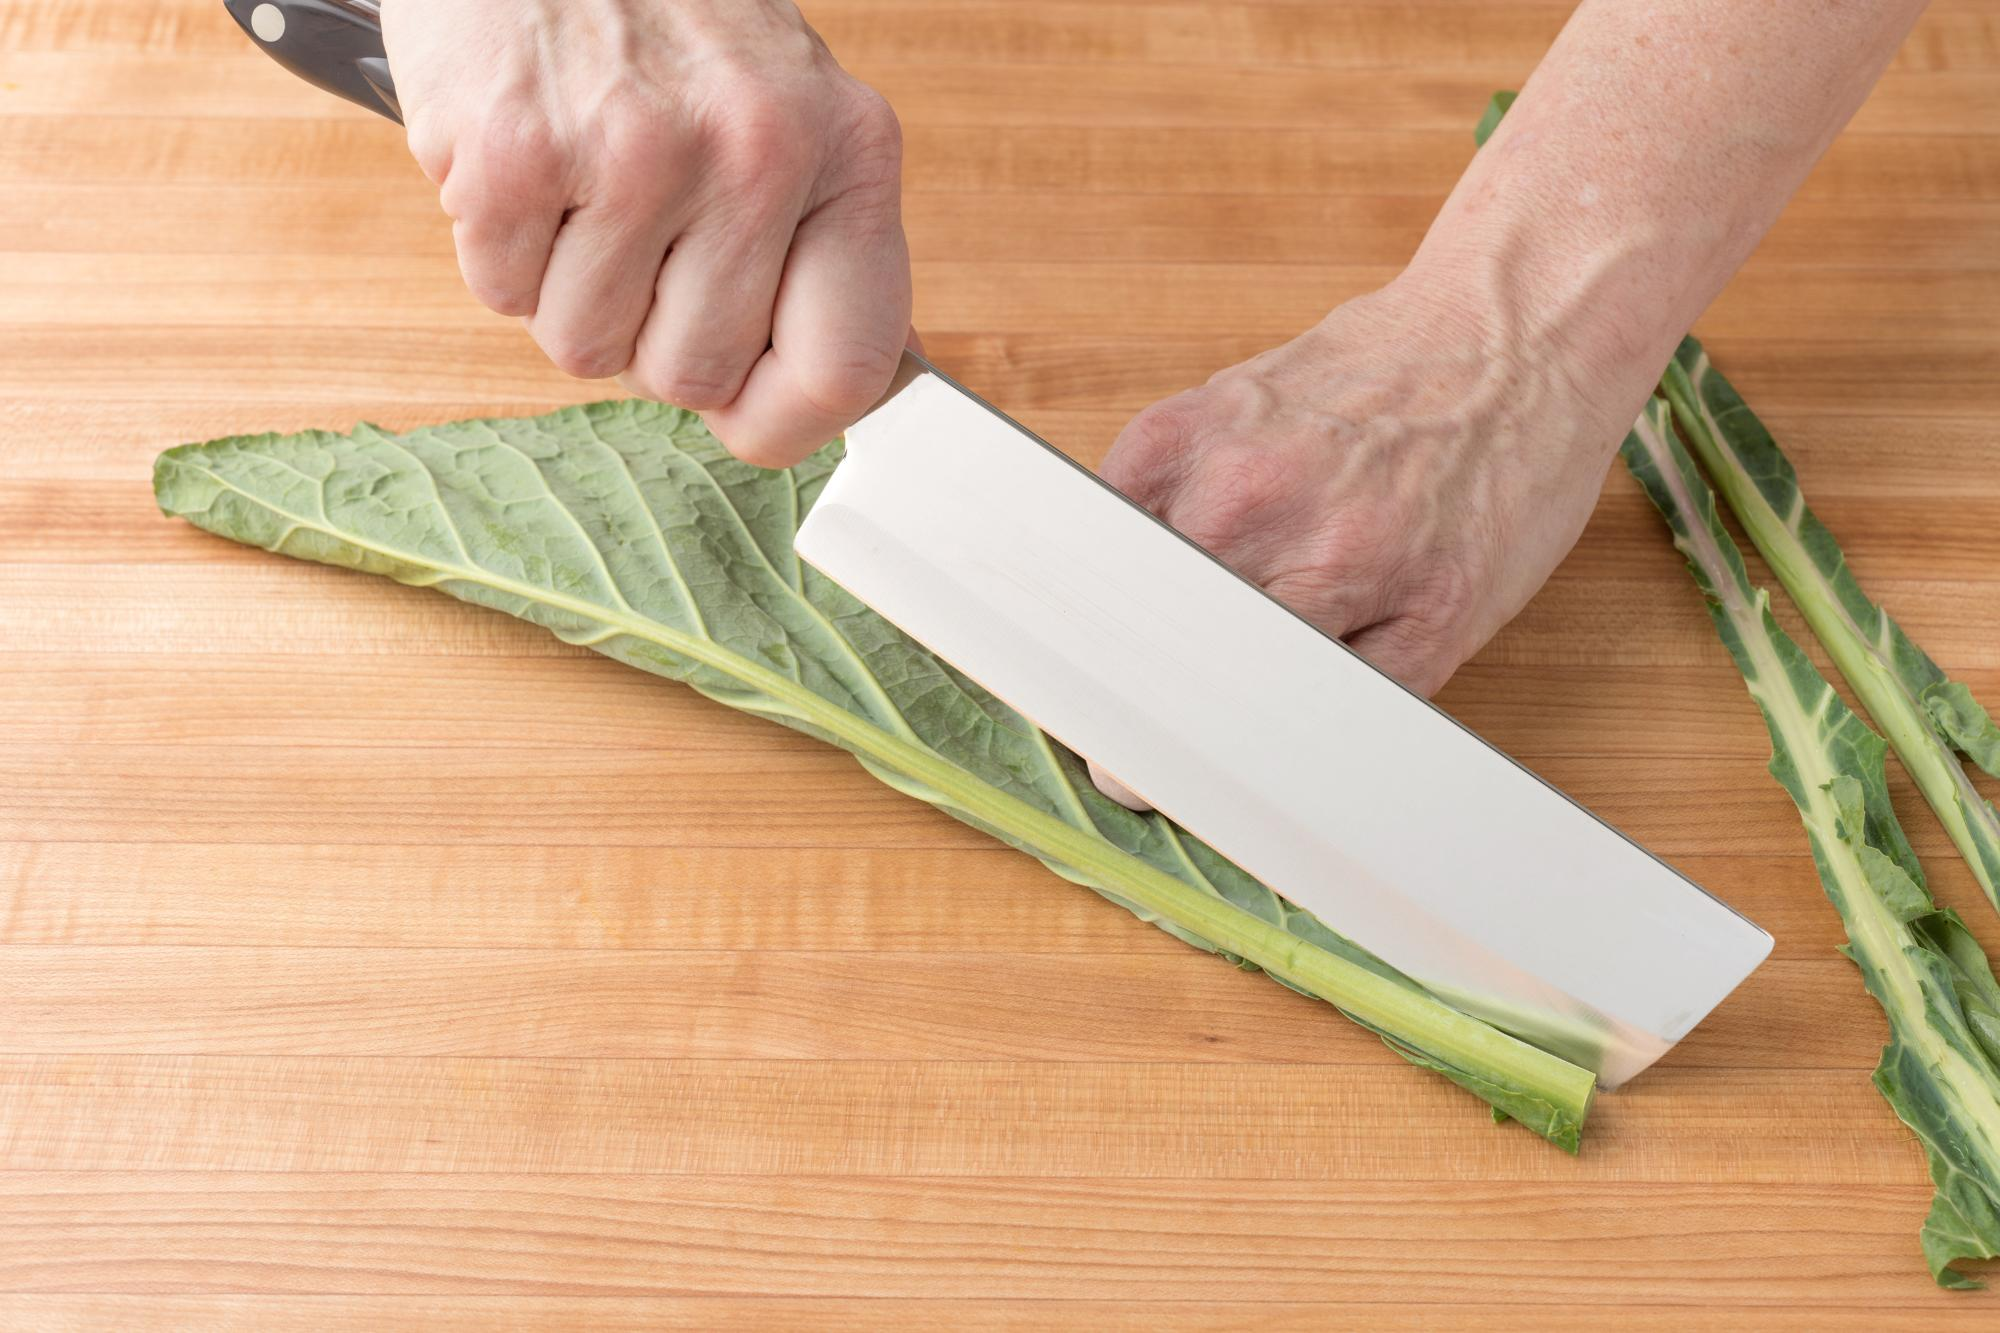 Slicing the stem of the collard greens with a Vegetable Knife.